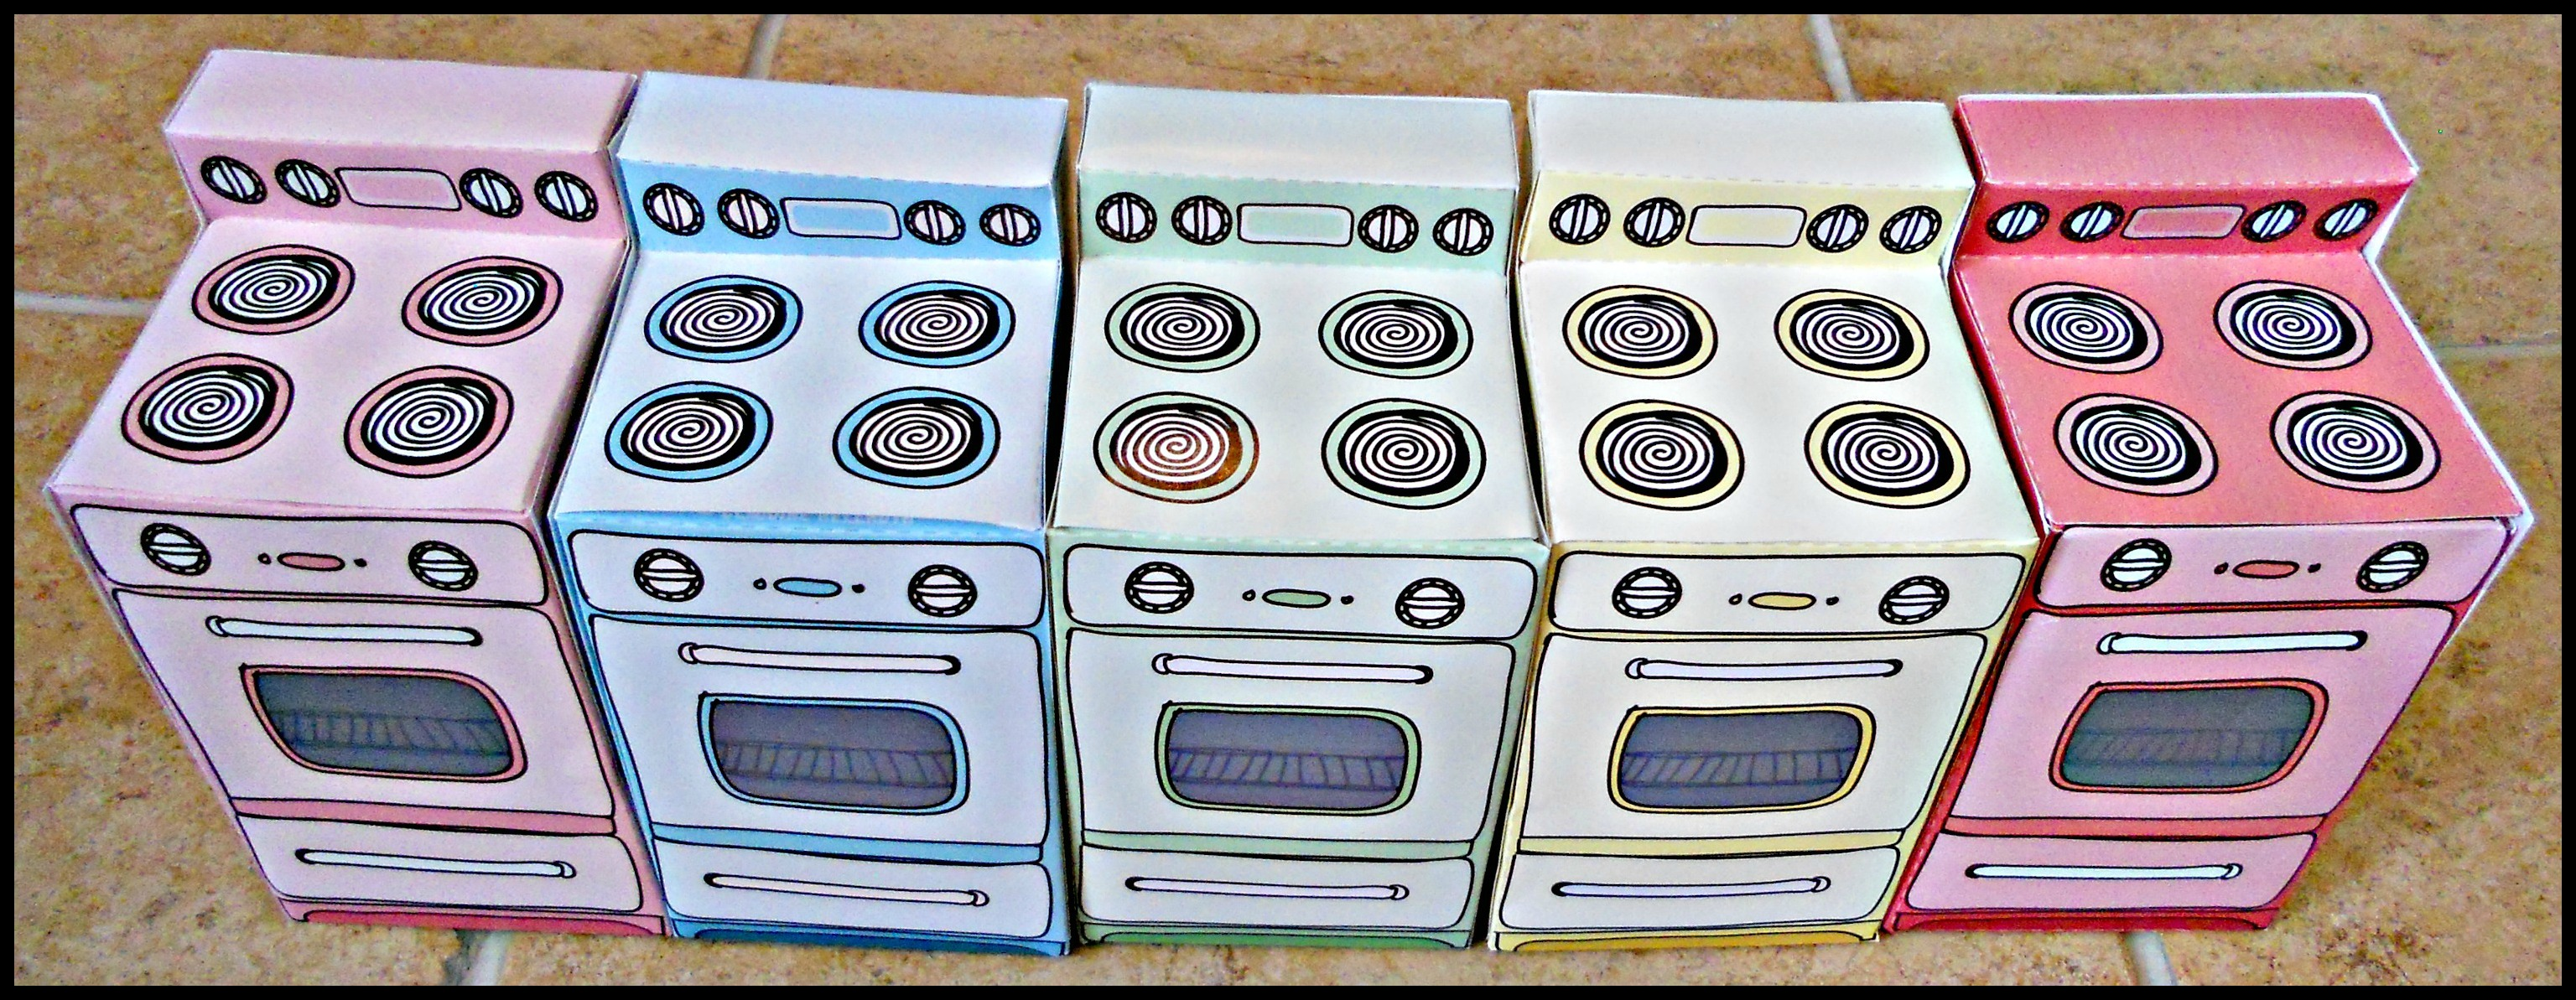 paper oven template